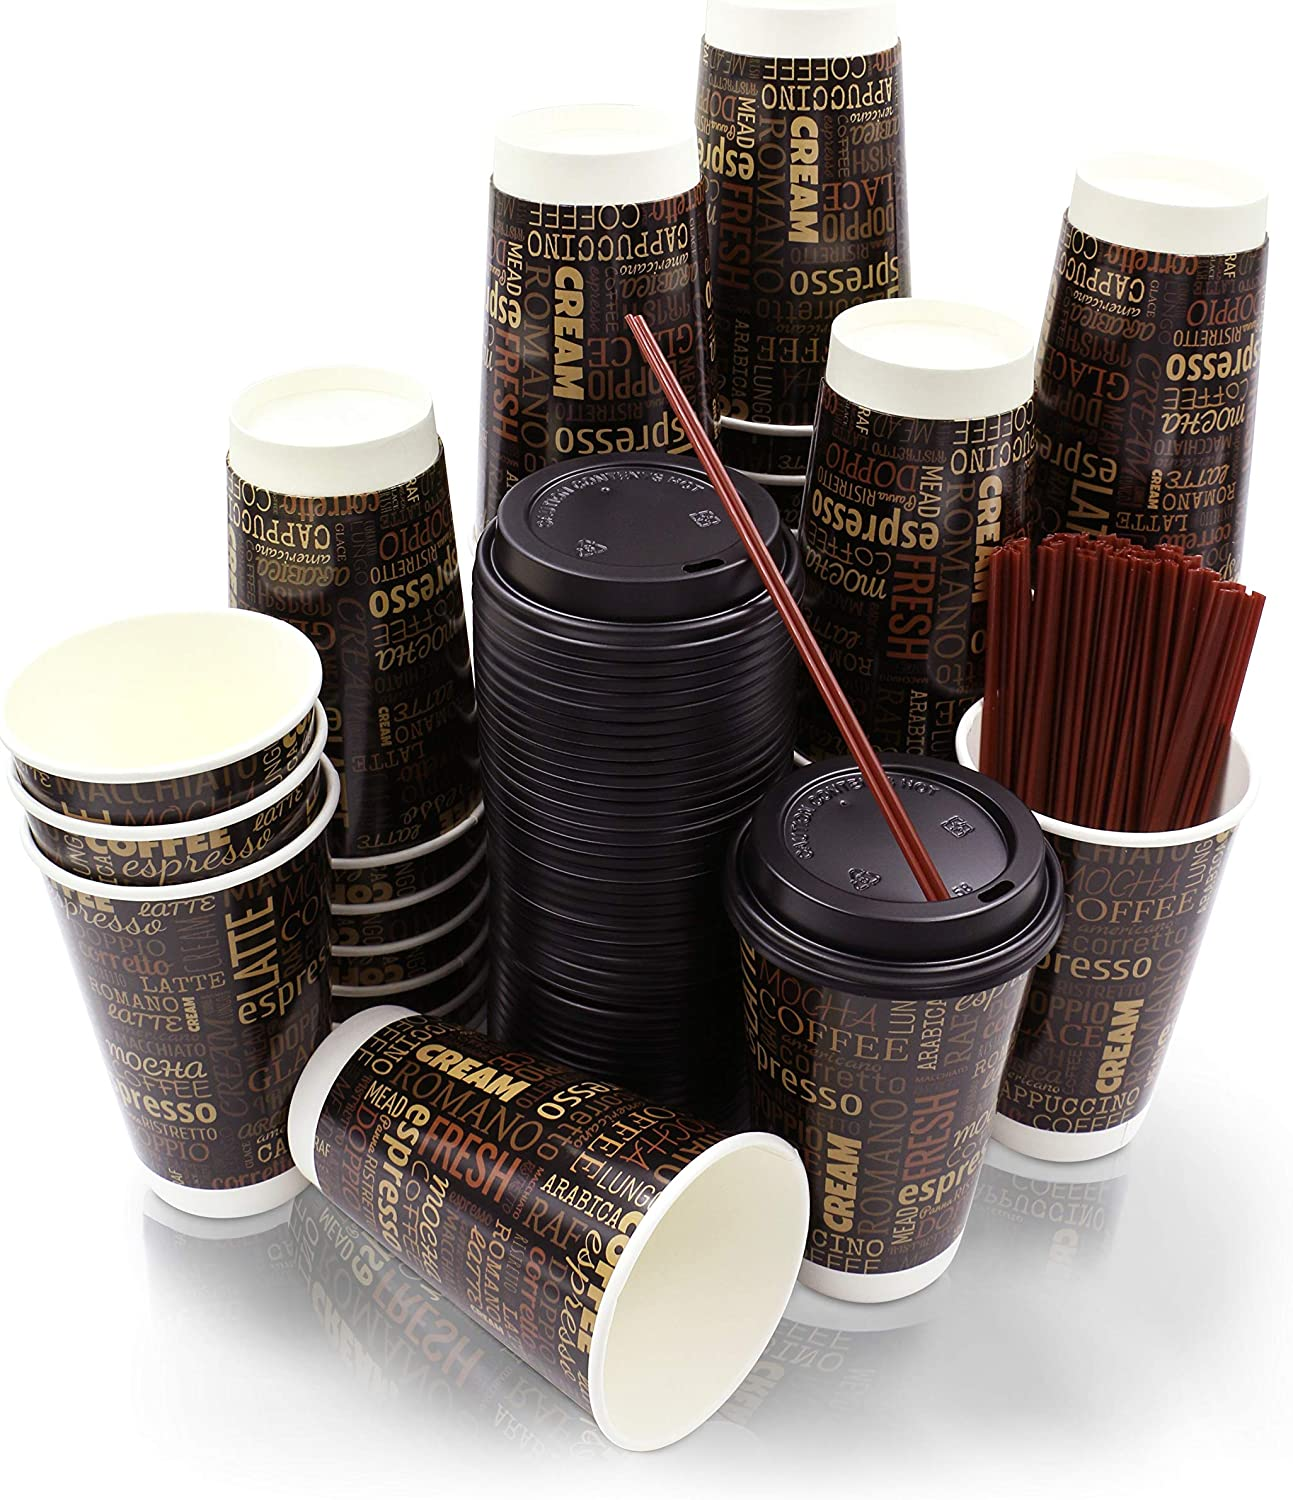 50 Pack | Premium 16 oz Disposable Paper Coffee Cups with Lids & Stirrer Straws | Disposable Hot Cups with Insulated Double Wall Technology by Bottoms Up Cups